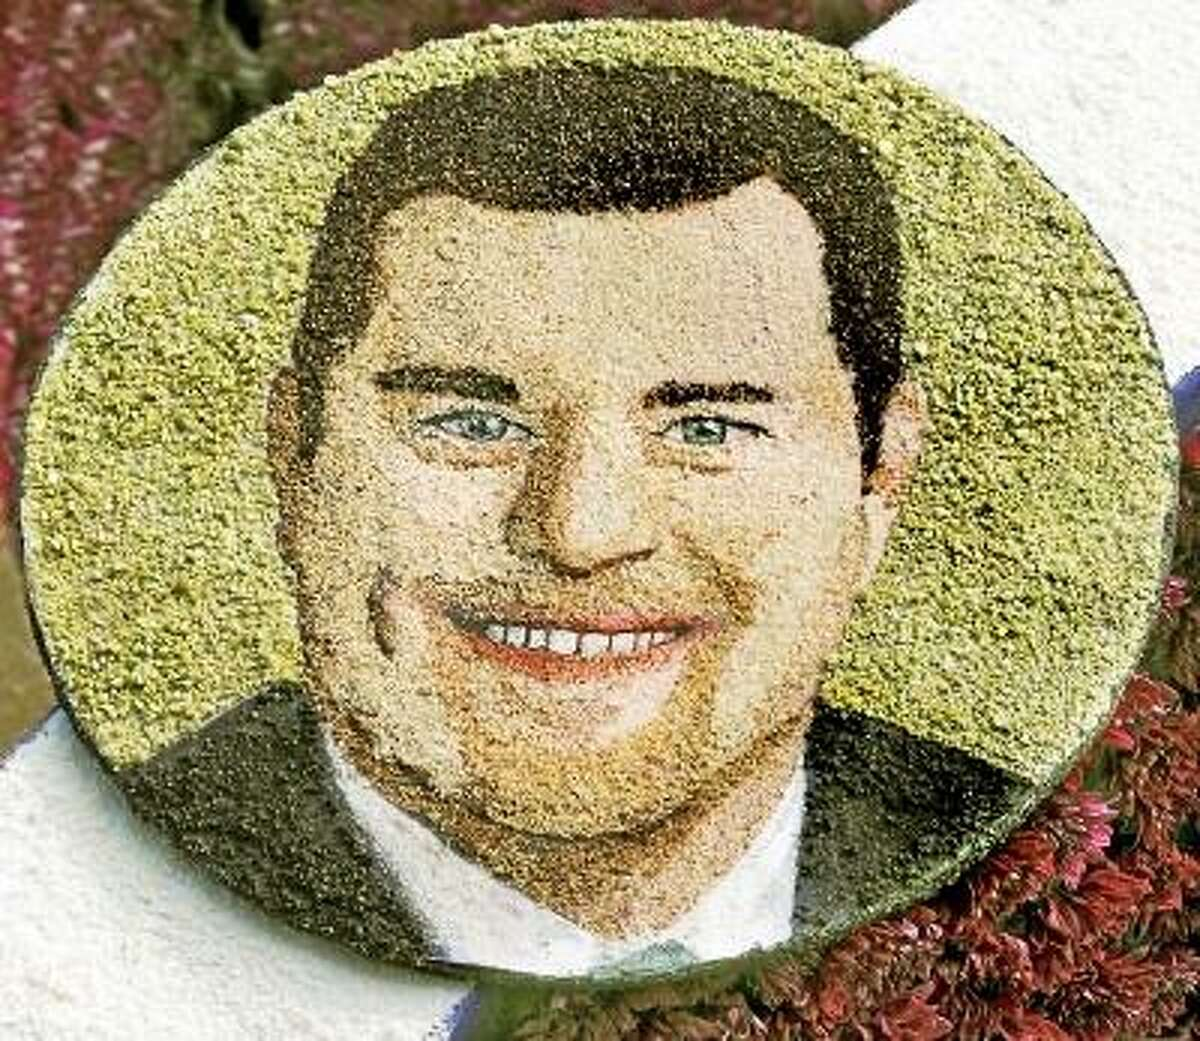 """A """"florograph"""" image of Robert Novak, a Deep River, CT, man who died and donated his tissue to save others, will adorn one of the floats in the Rose Parade. For the 32 people honorted to ride the 10th annual Donate Life float in the 2013 Rose Parade, their emotional journeys mirror the highs, low and all points in between shared by the national community of organ and tissue recipients, transplant candidates, living donors and families of deceased donors they represent. The 2013 Donate Life float will carry individuals aged 12 to 68 from 17 states and Canada who were selected by local organizations for their example of courage, hope, genorsity and advocavy for organ and tissue donation Monday, December 31, 2012. (SGVN/Photo by Walt Mancini/SXCity)"""